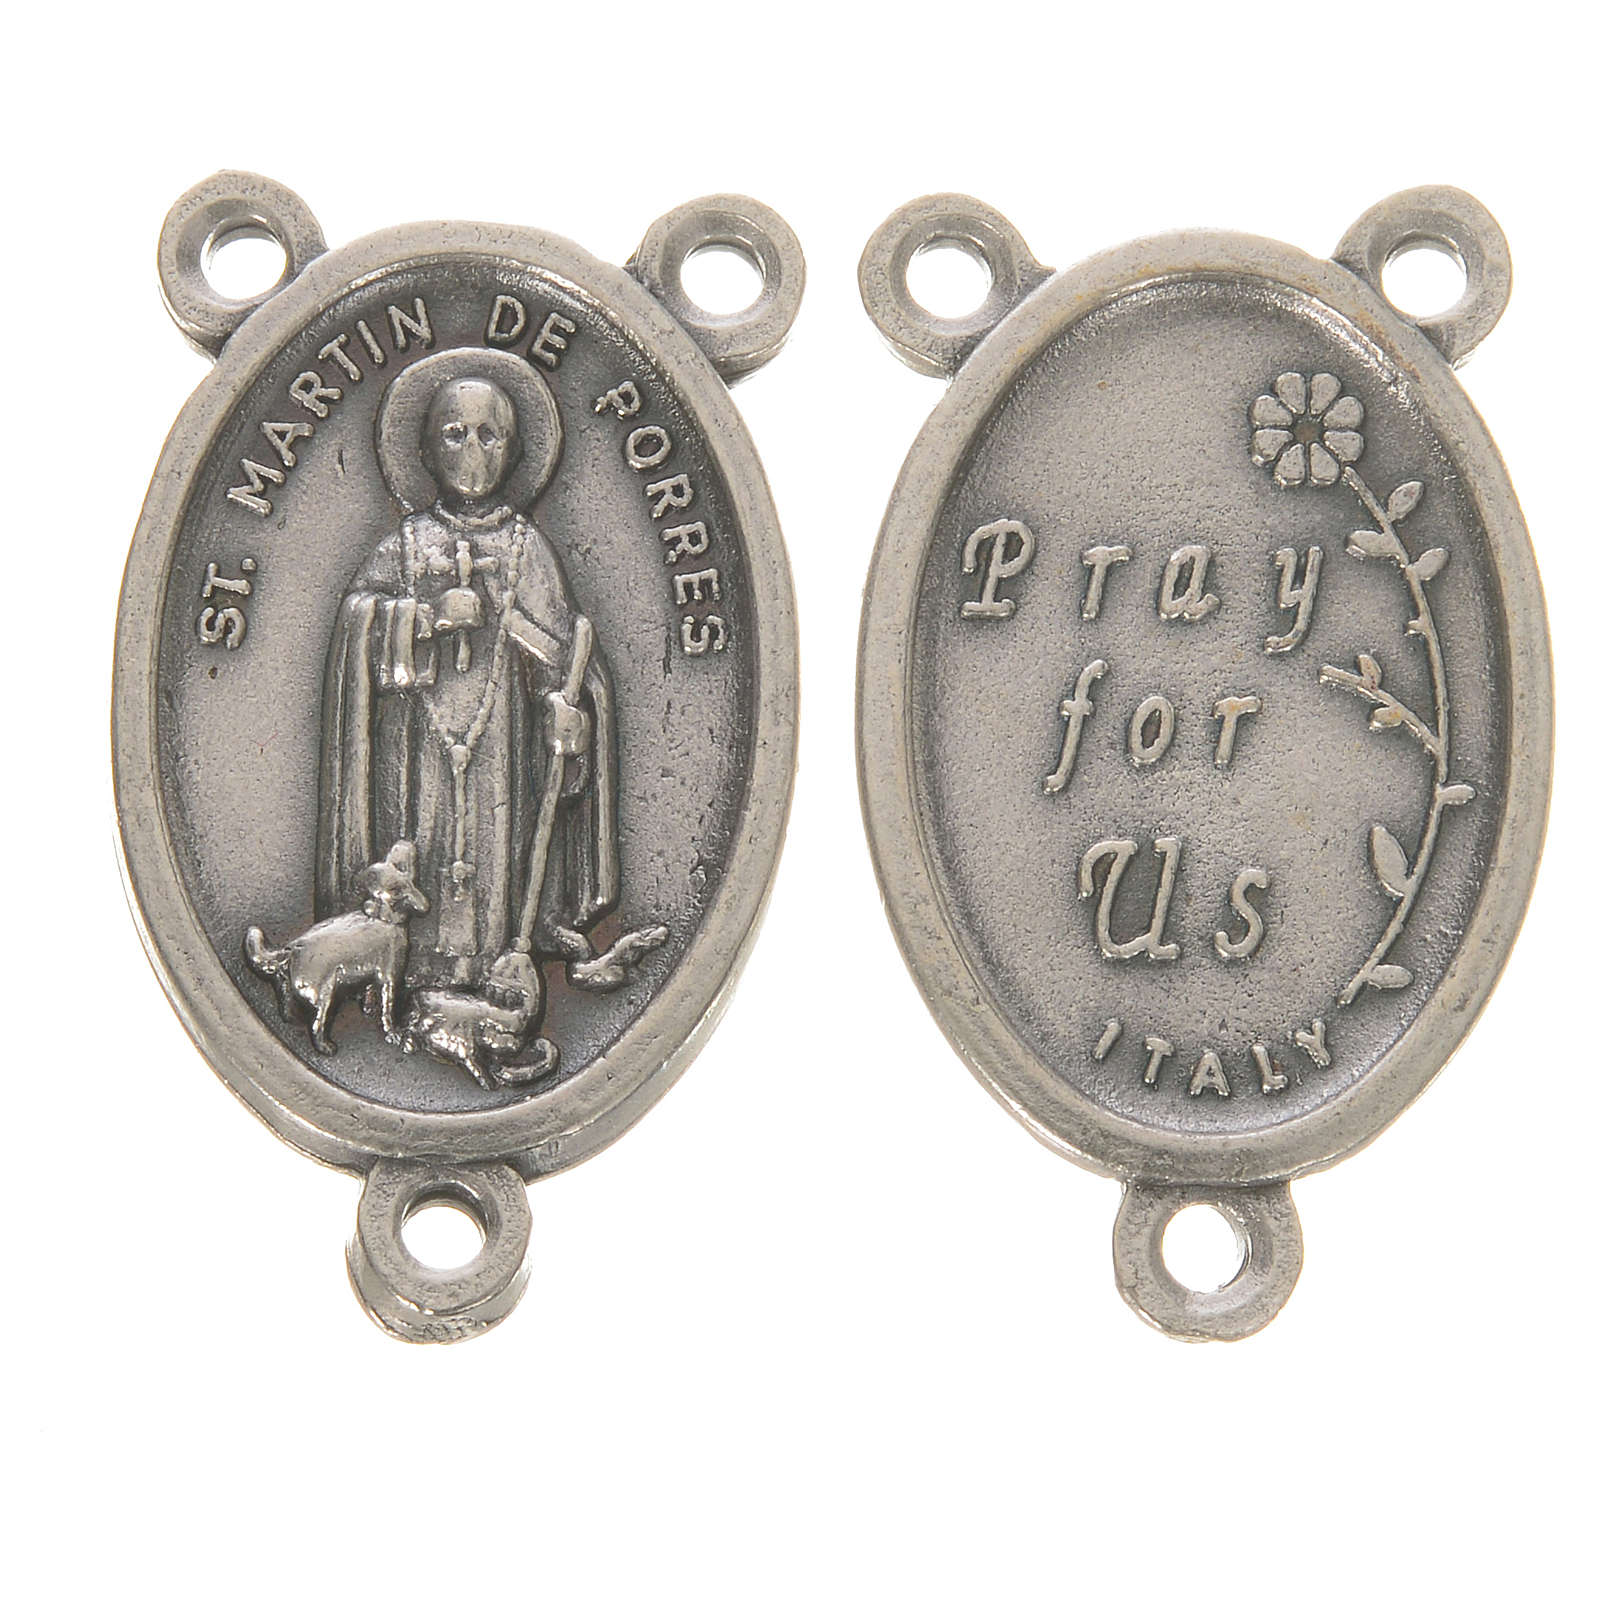 Medal with Saint Martin de Porres 4